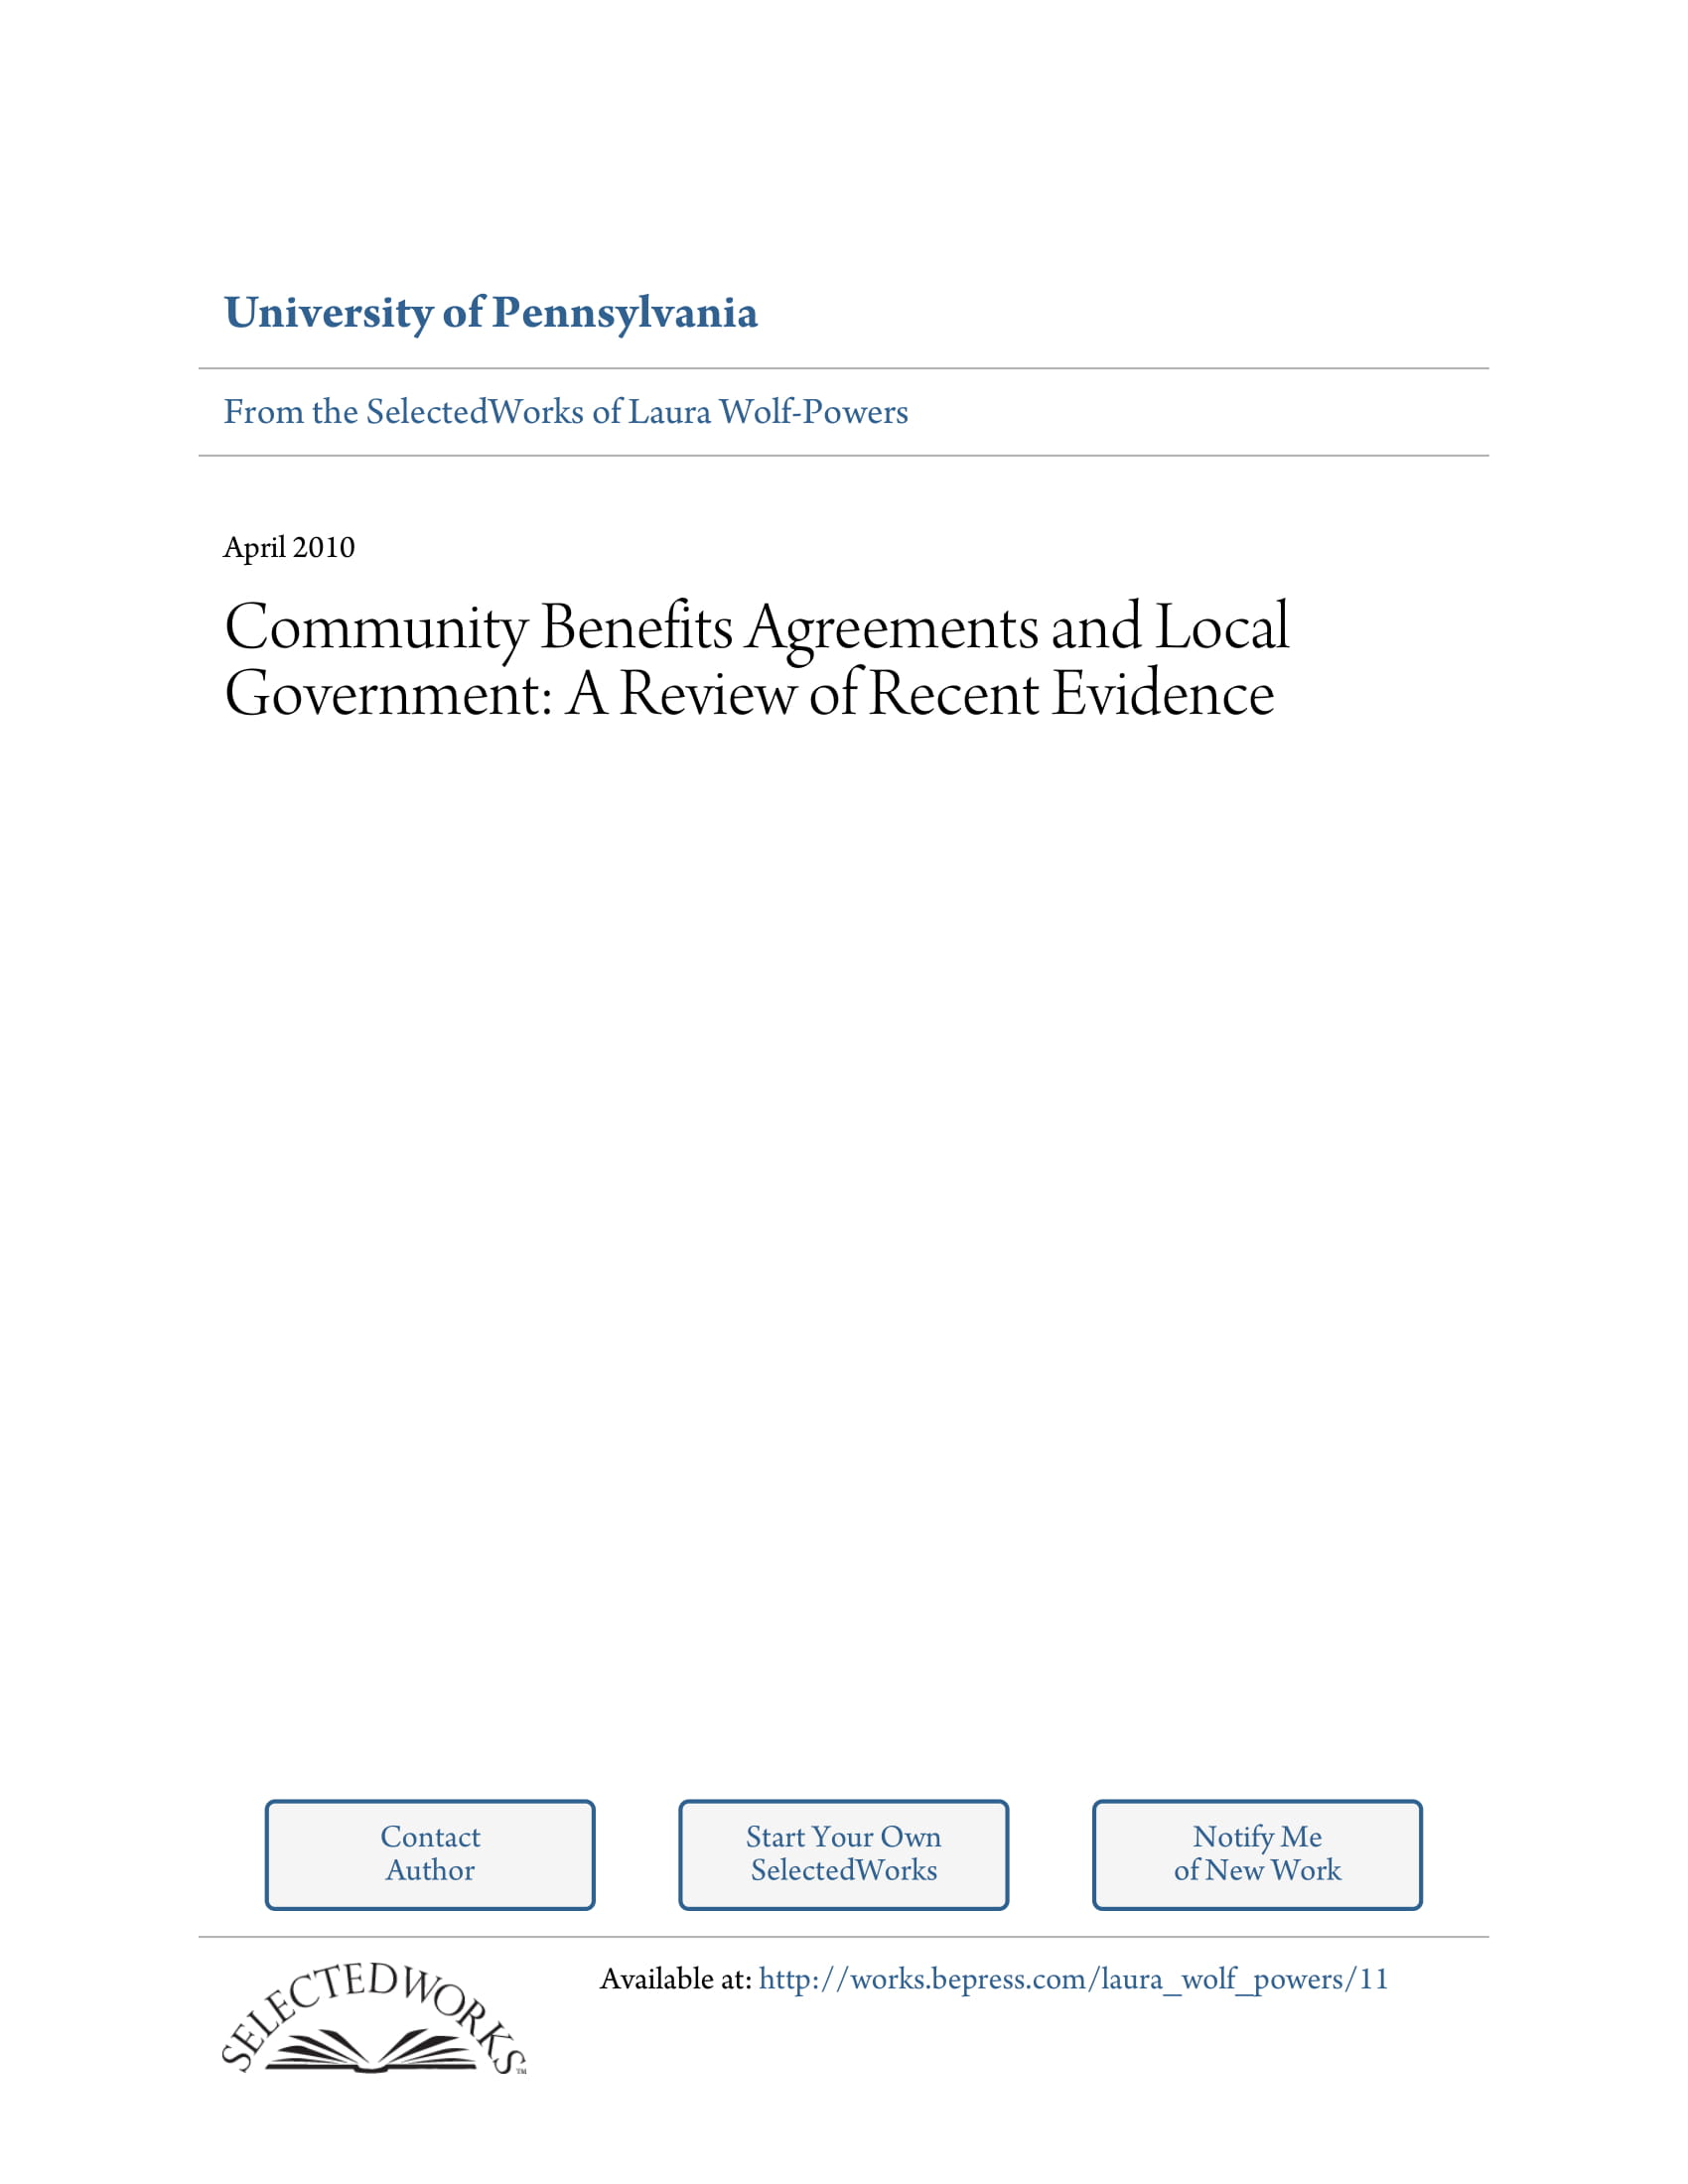 detailed community benefits agreement example